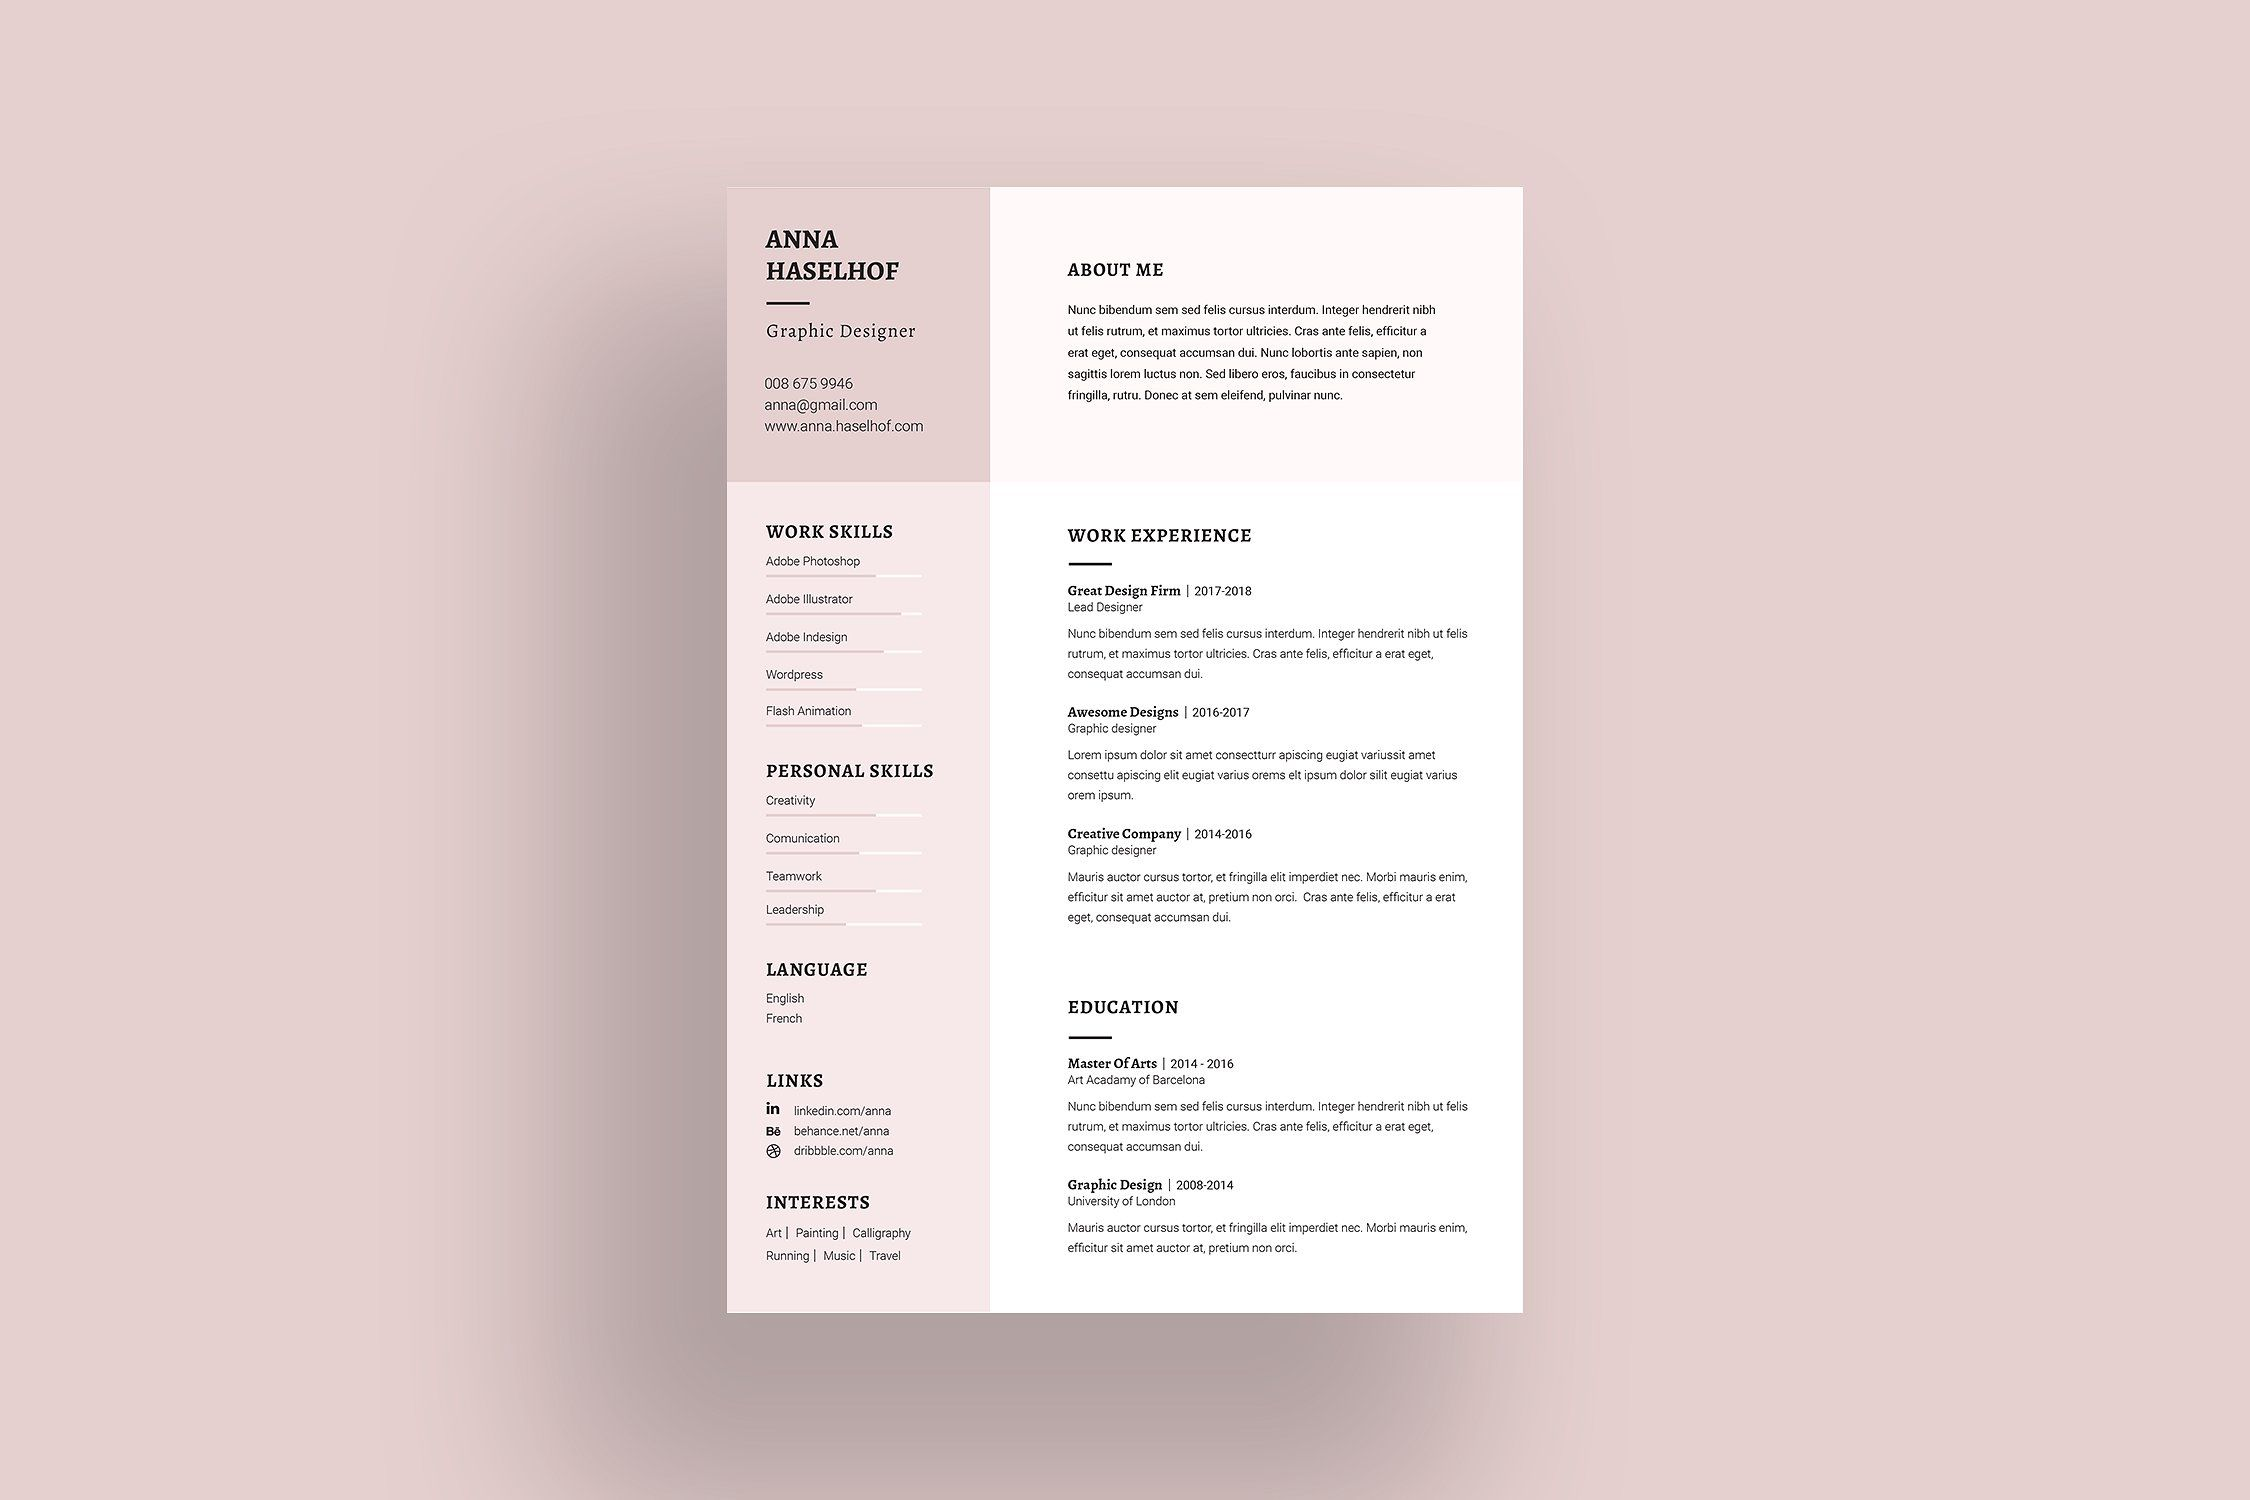 Elegant Resume Template aipsdpdfIncluded Templates